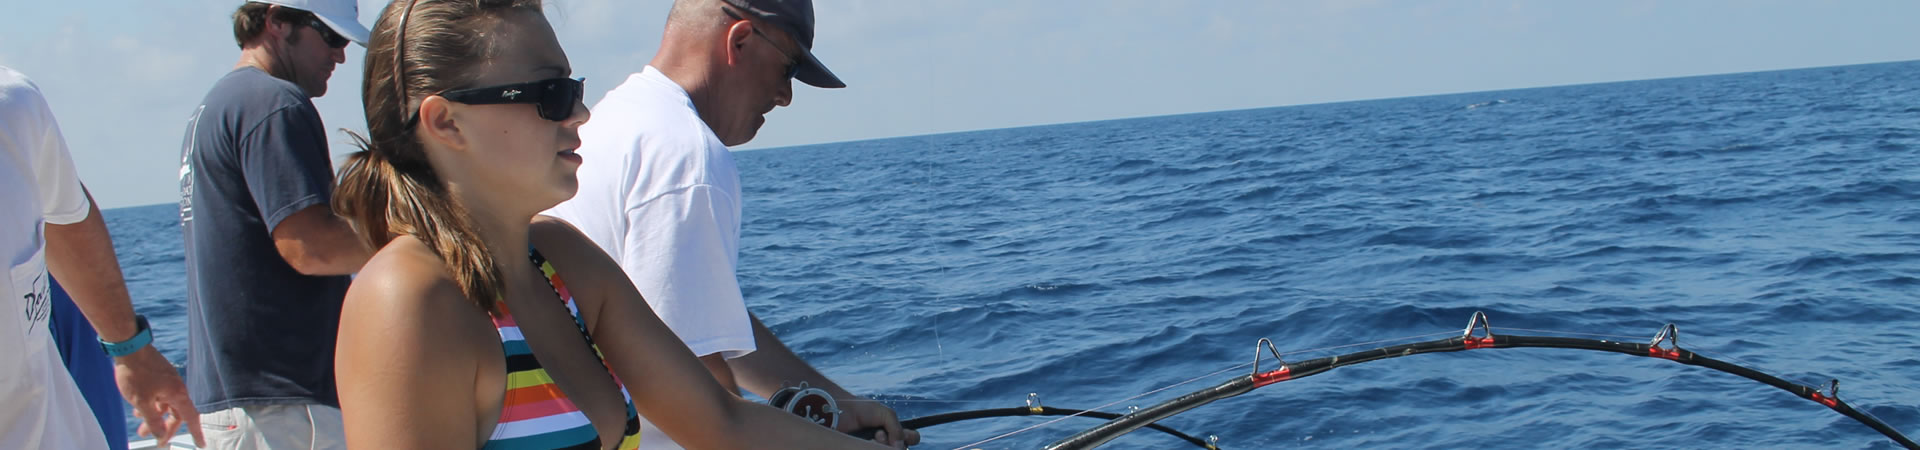 Destin charter boats destin fl fishing charters for Fishing destin fl